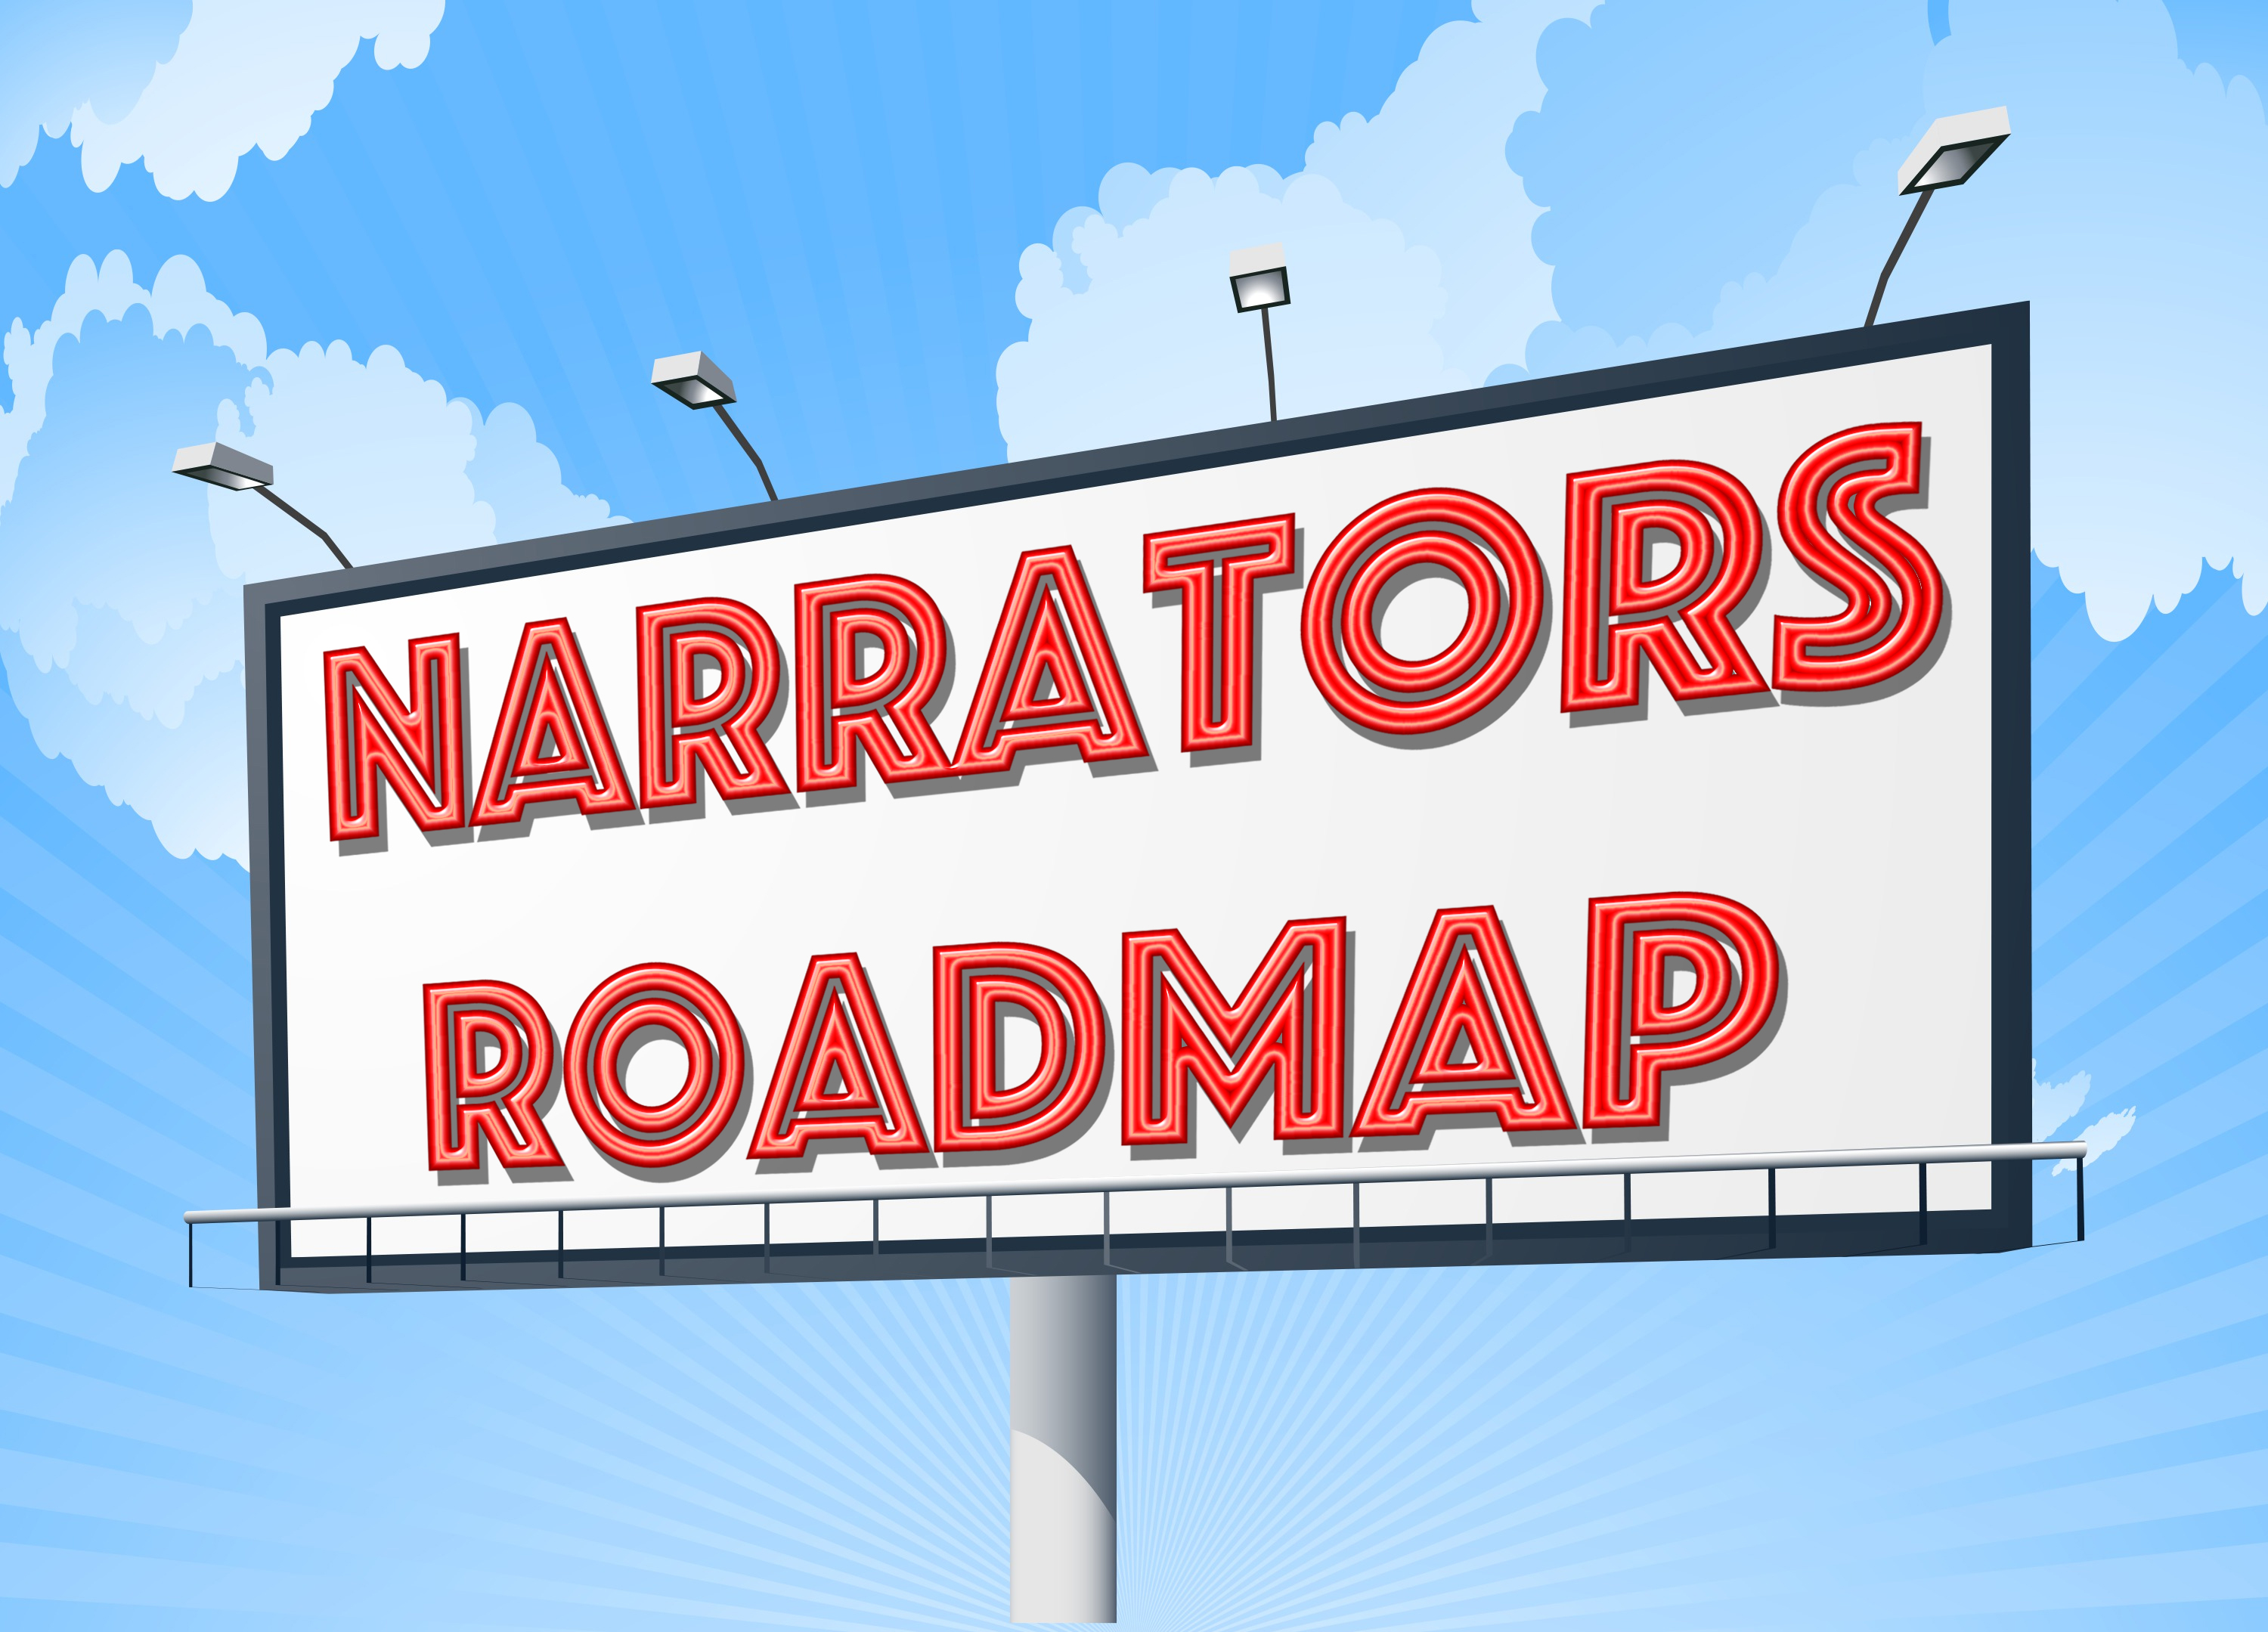 billboard with Narrators Roadmap in letters that look like red neon